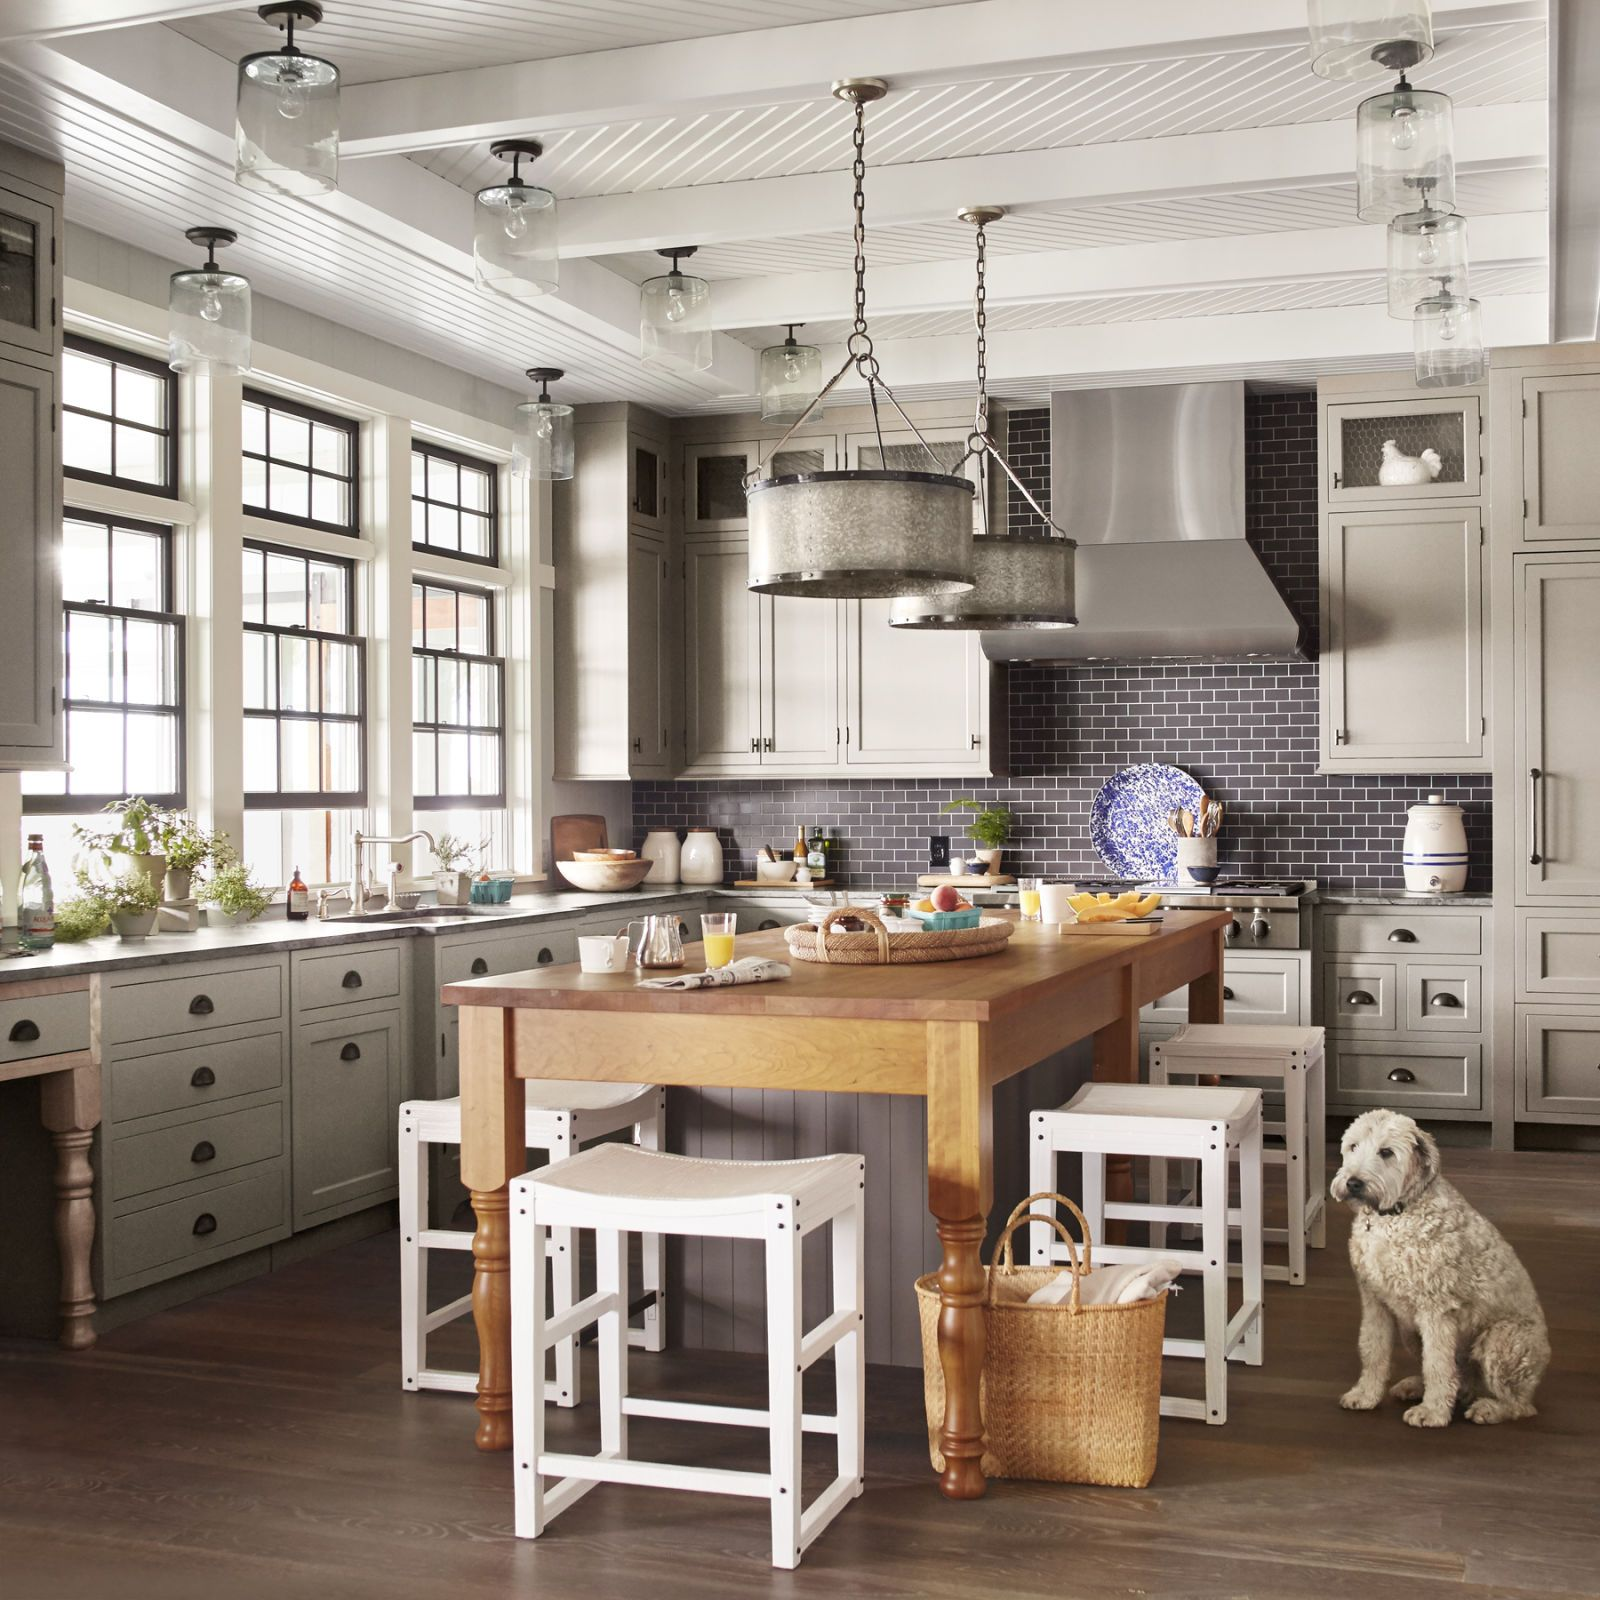 10 Essential Rules For Decorating A Lake House Kitchen